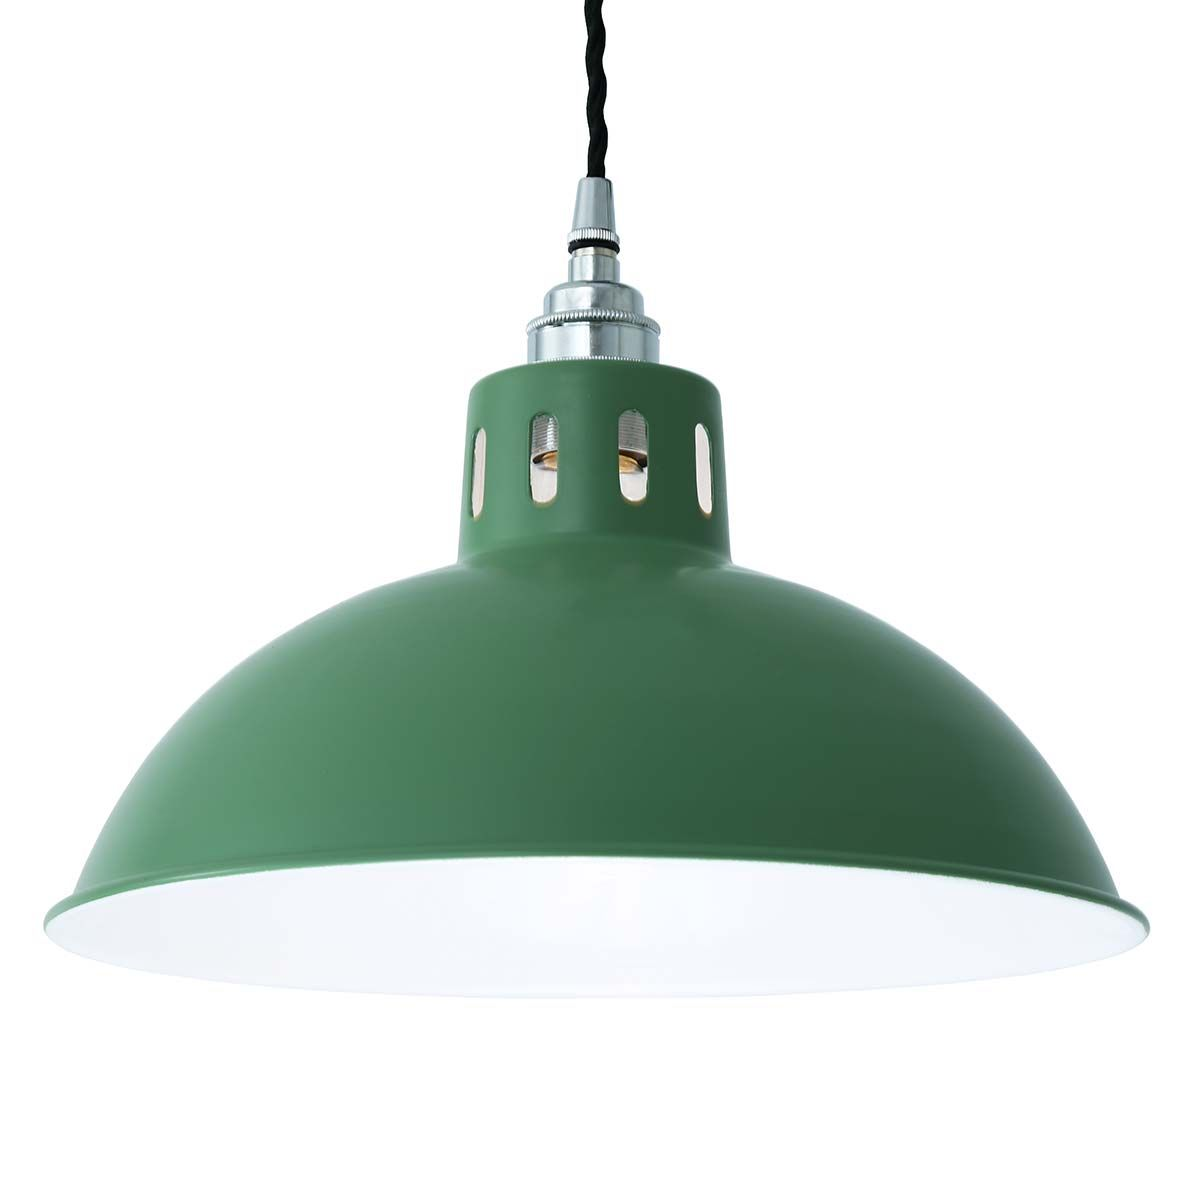 Suspension en aluminium vert menthe Osson Mullan Lighting